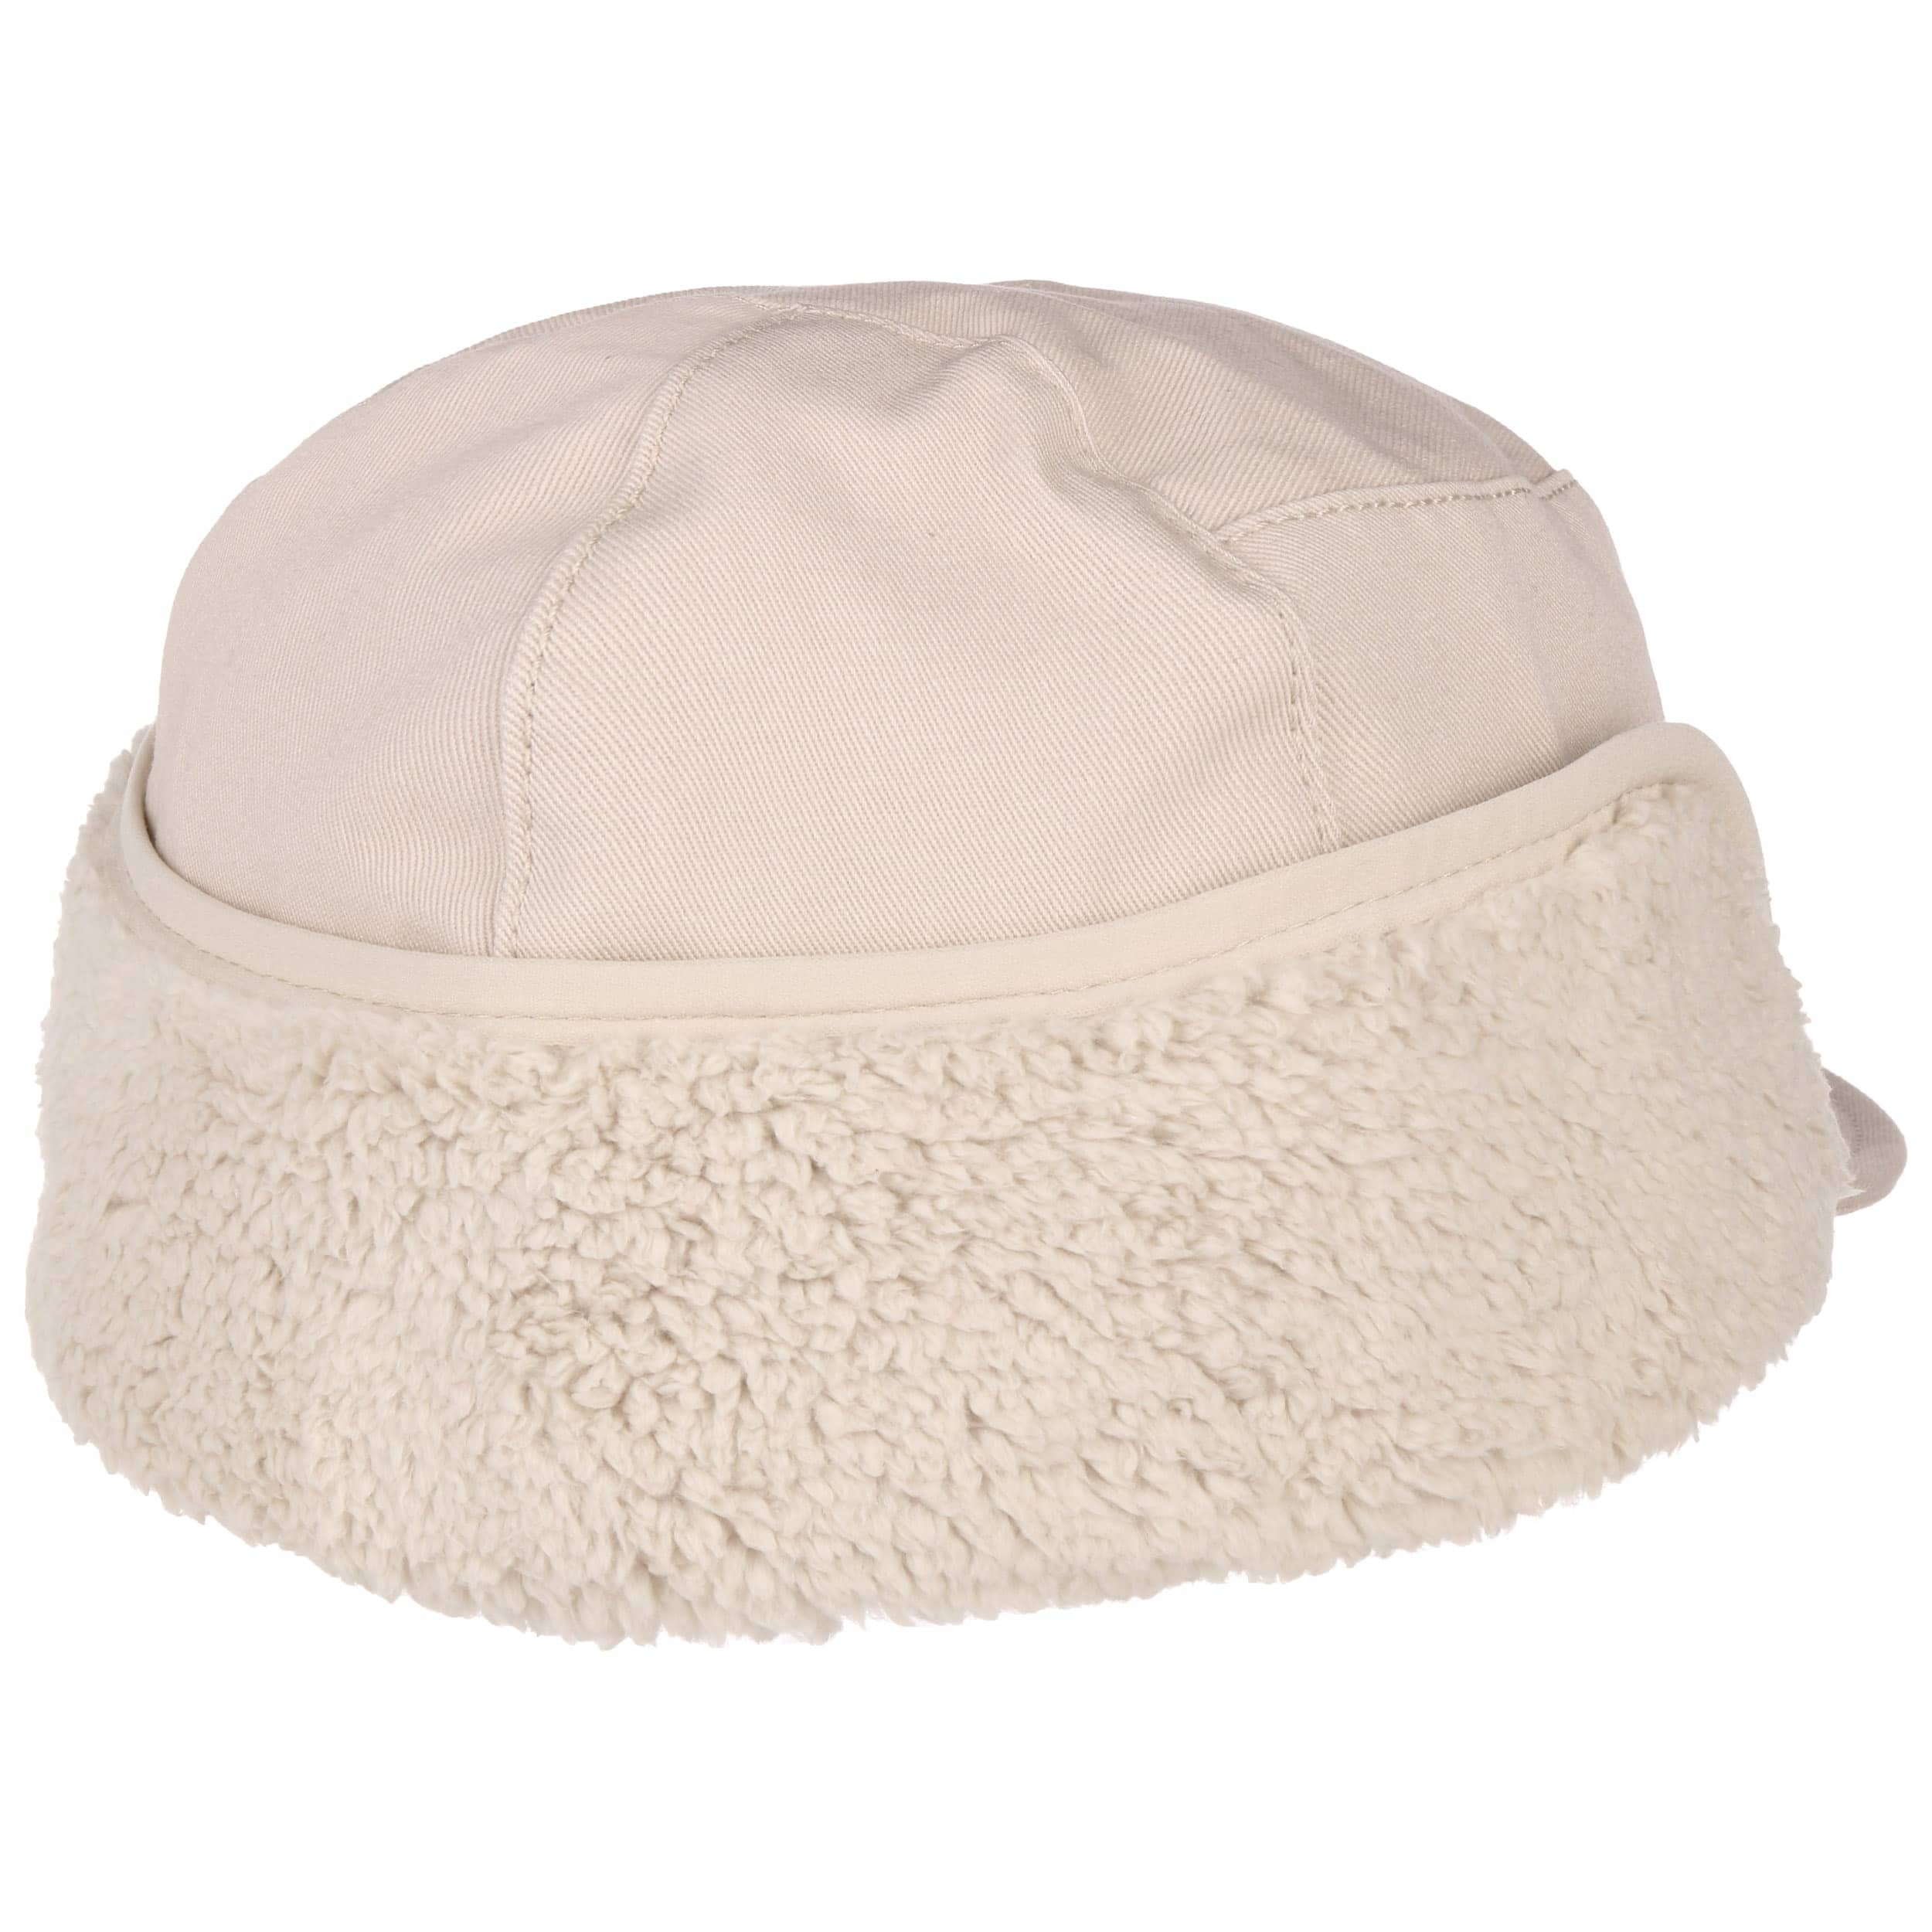 ... Cappellino Campshire Ear Flap by The North Face - beige 7 ... c324ce2cd95b